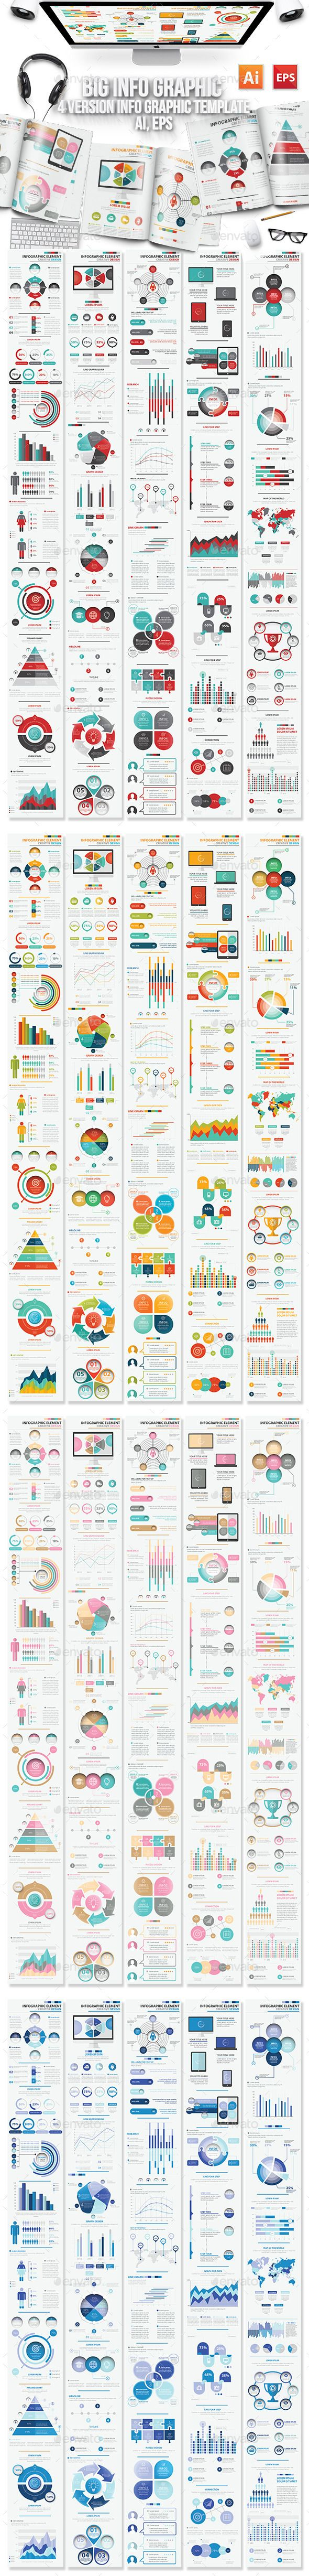 Info Graphic Elements Design Template #design Download: http://graphicriver.net/item/info-graphic-elements-design/11938172?ref=ksioks